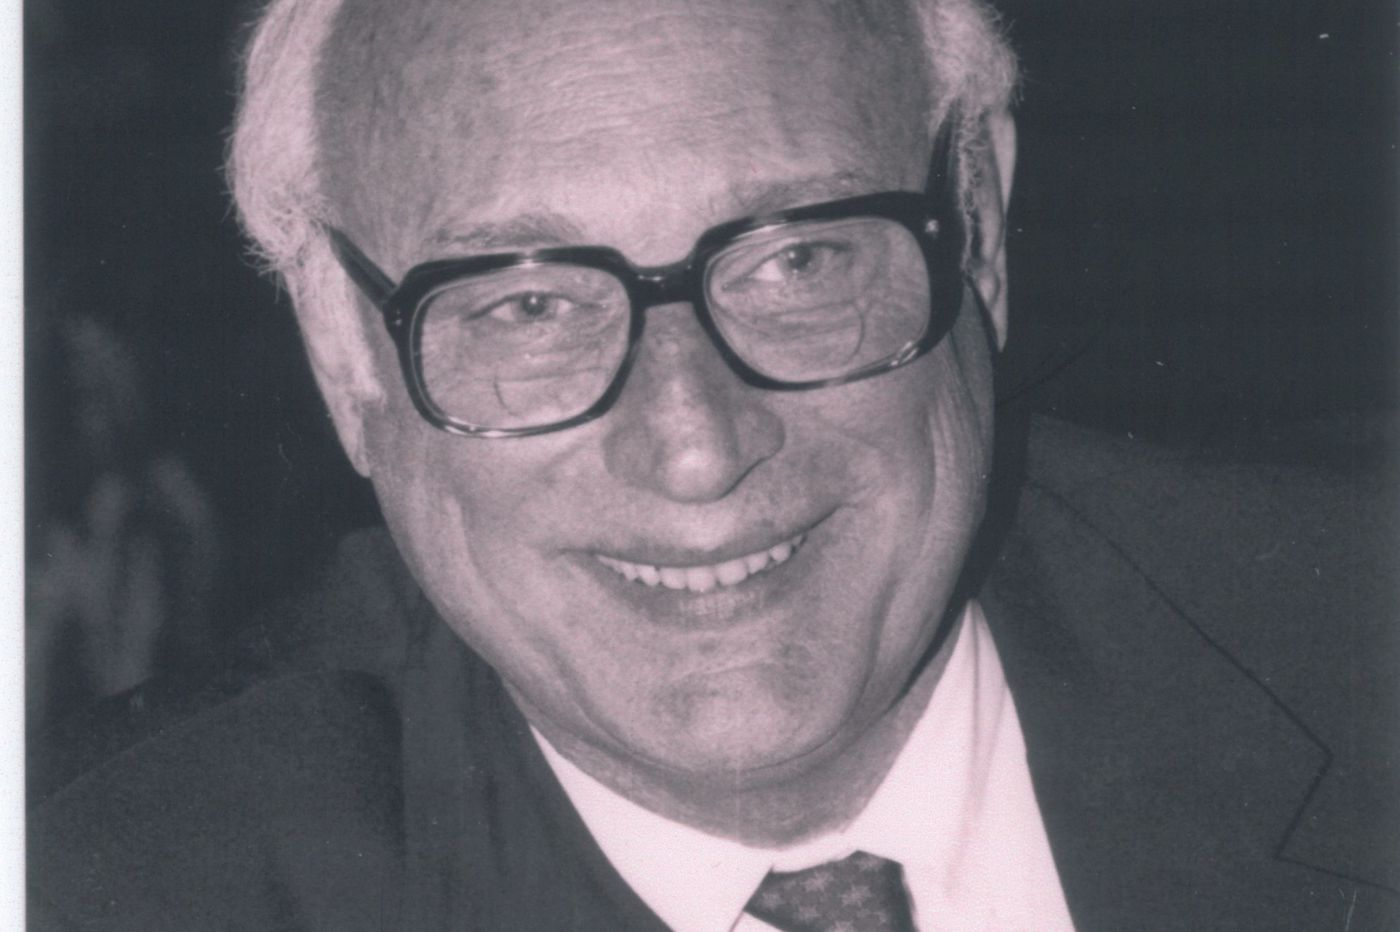 Edward C. Driscoll, builder of Liberty Place, 89